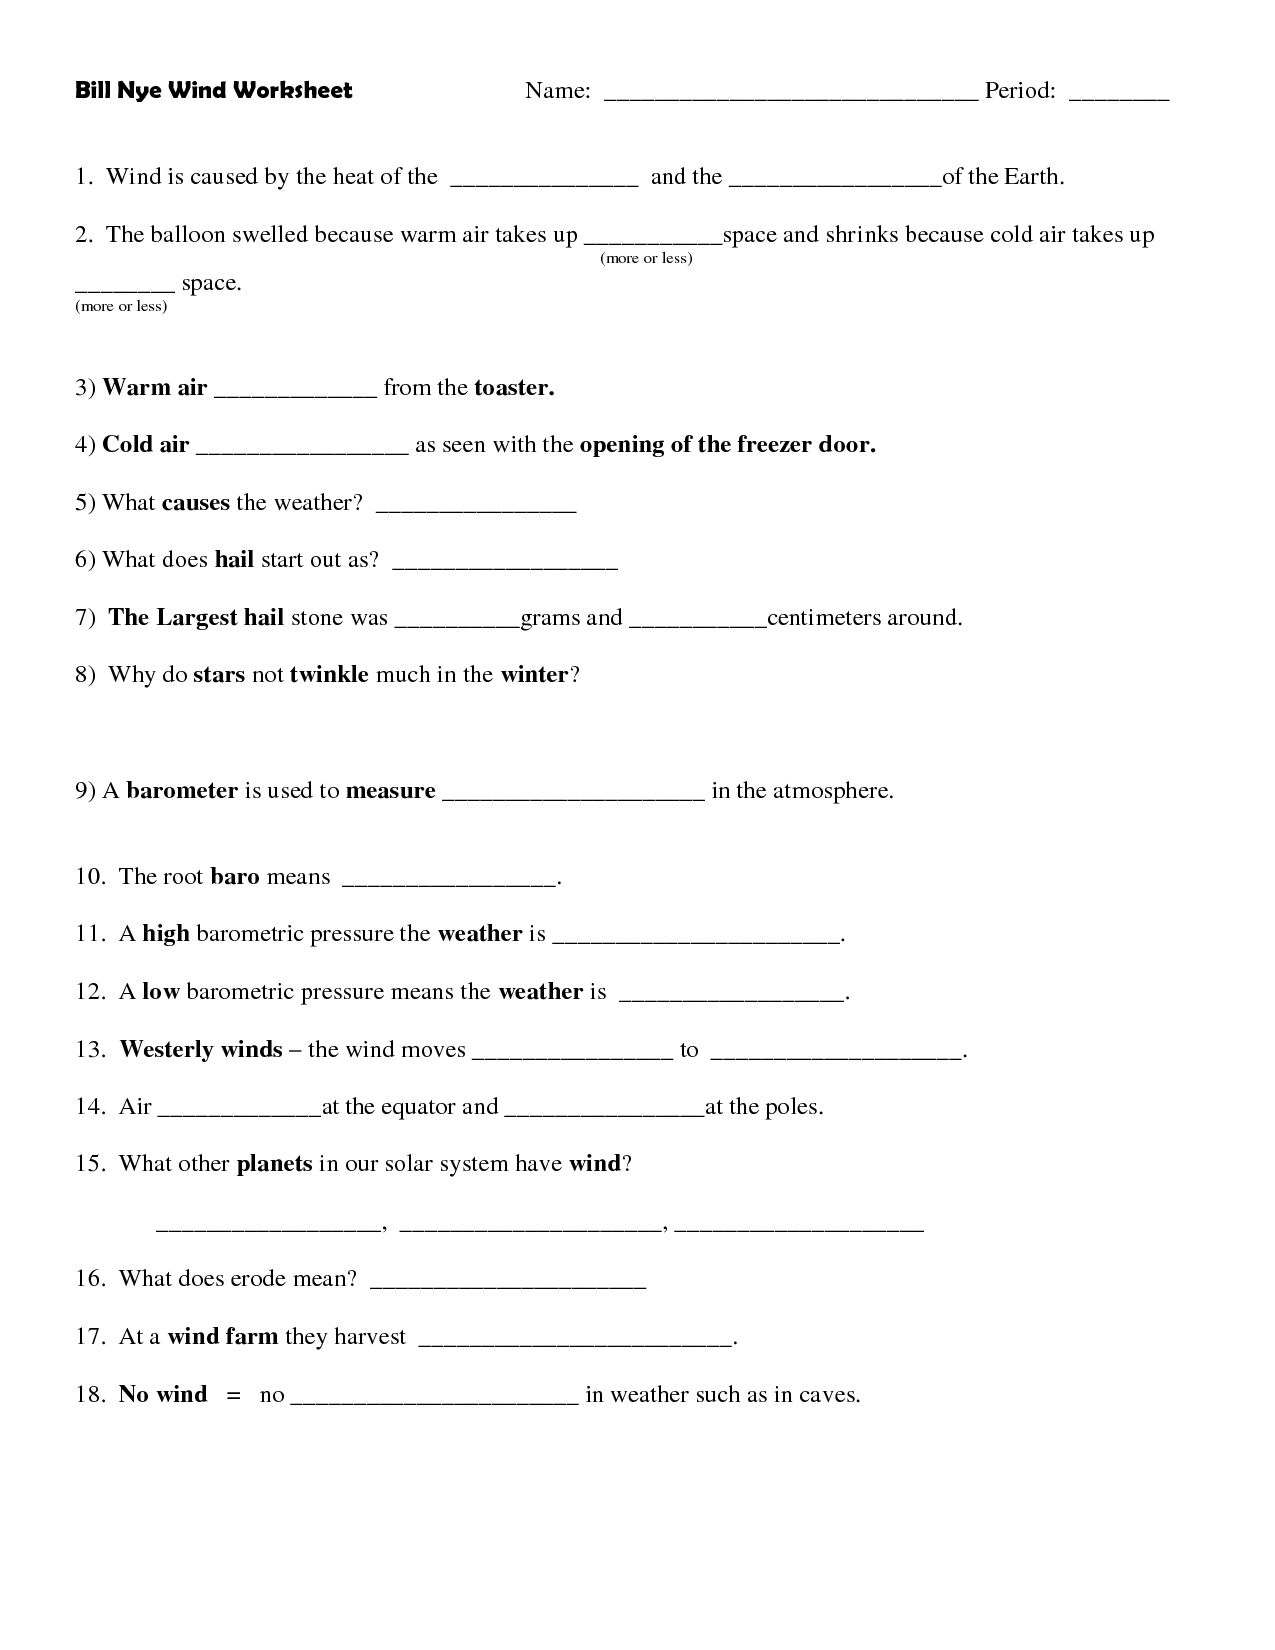 Bill Nye Brain Worksheet Answers Excelguider